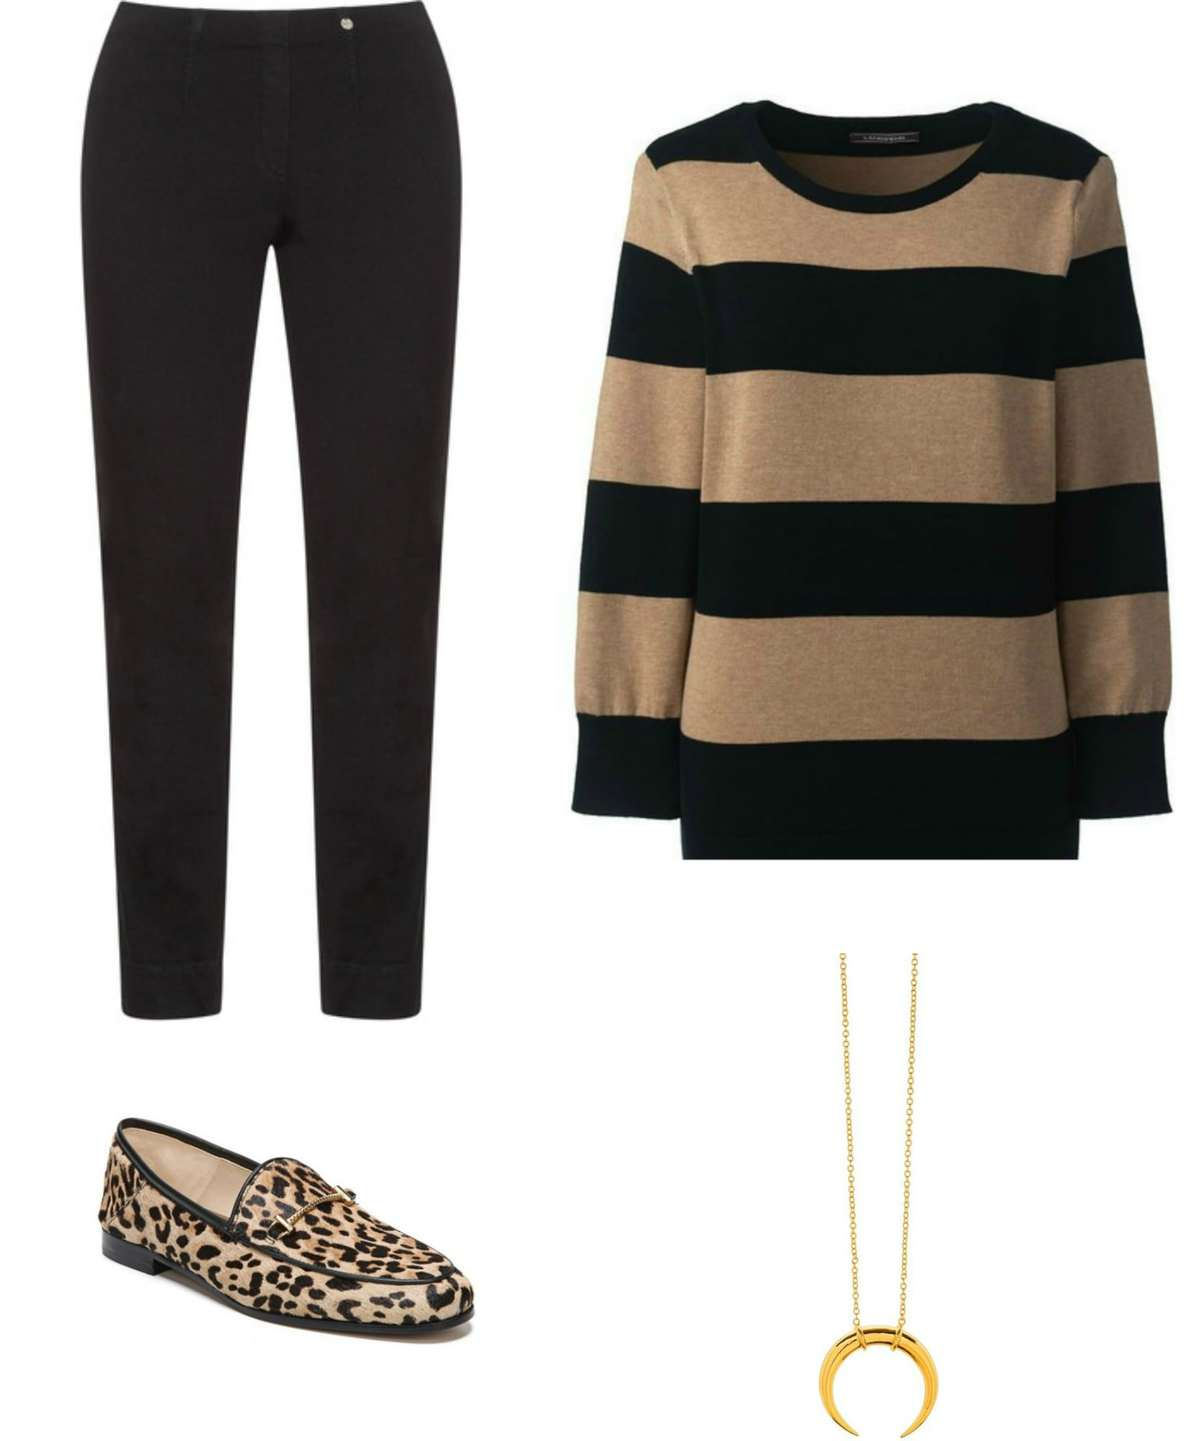 Leopard and stripes are always a winning combination!